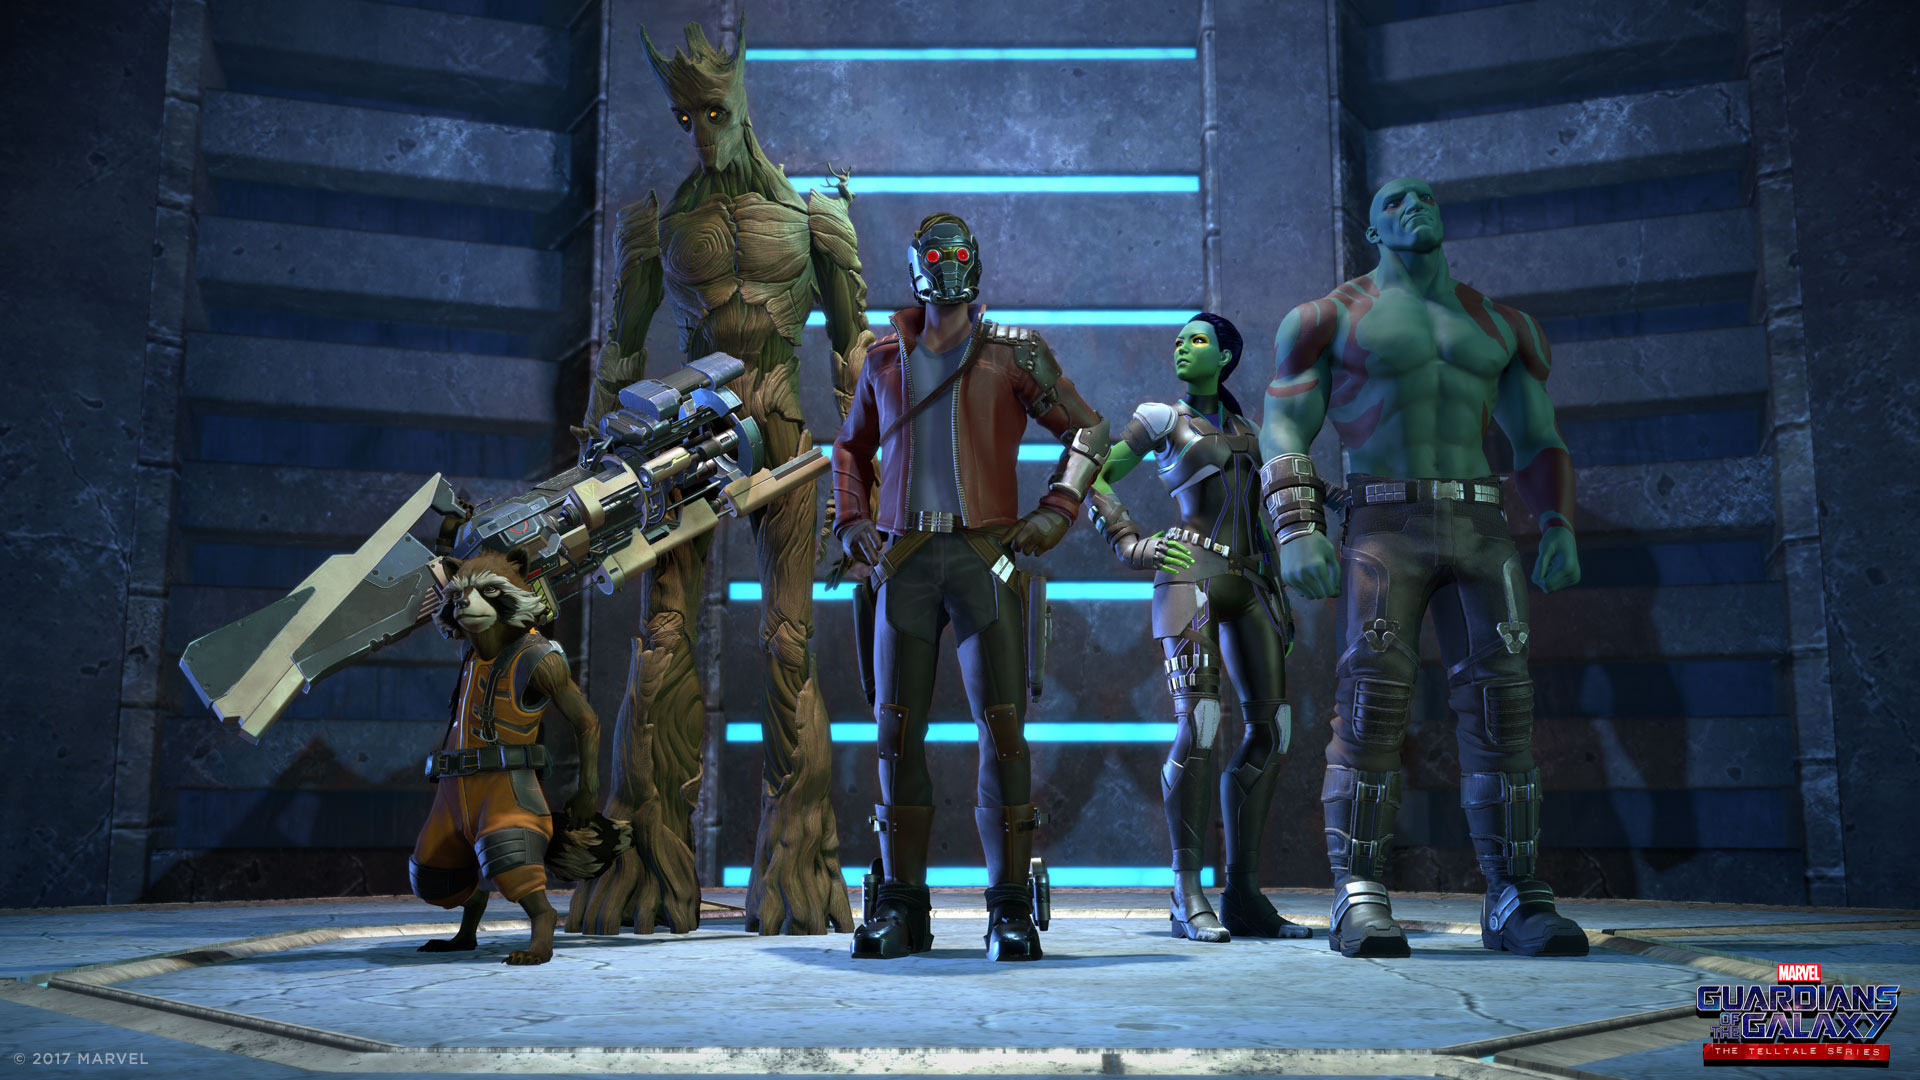 guardians of the galaxy soundtrack torrent